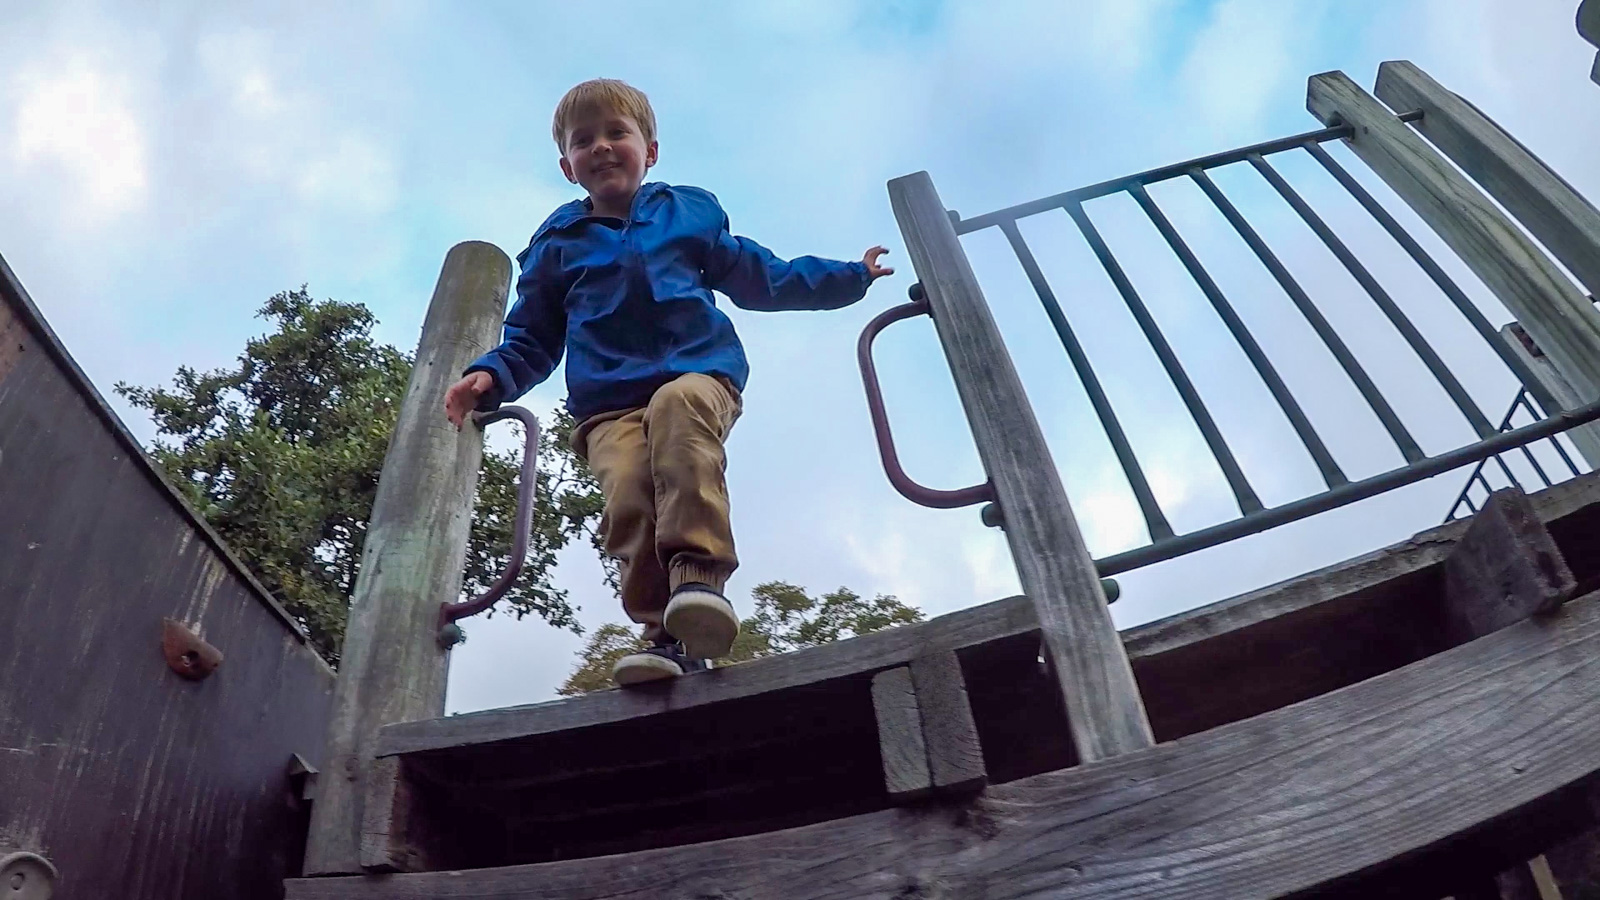 Christchurch boy jumping at park